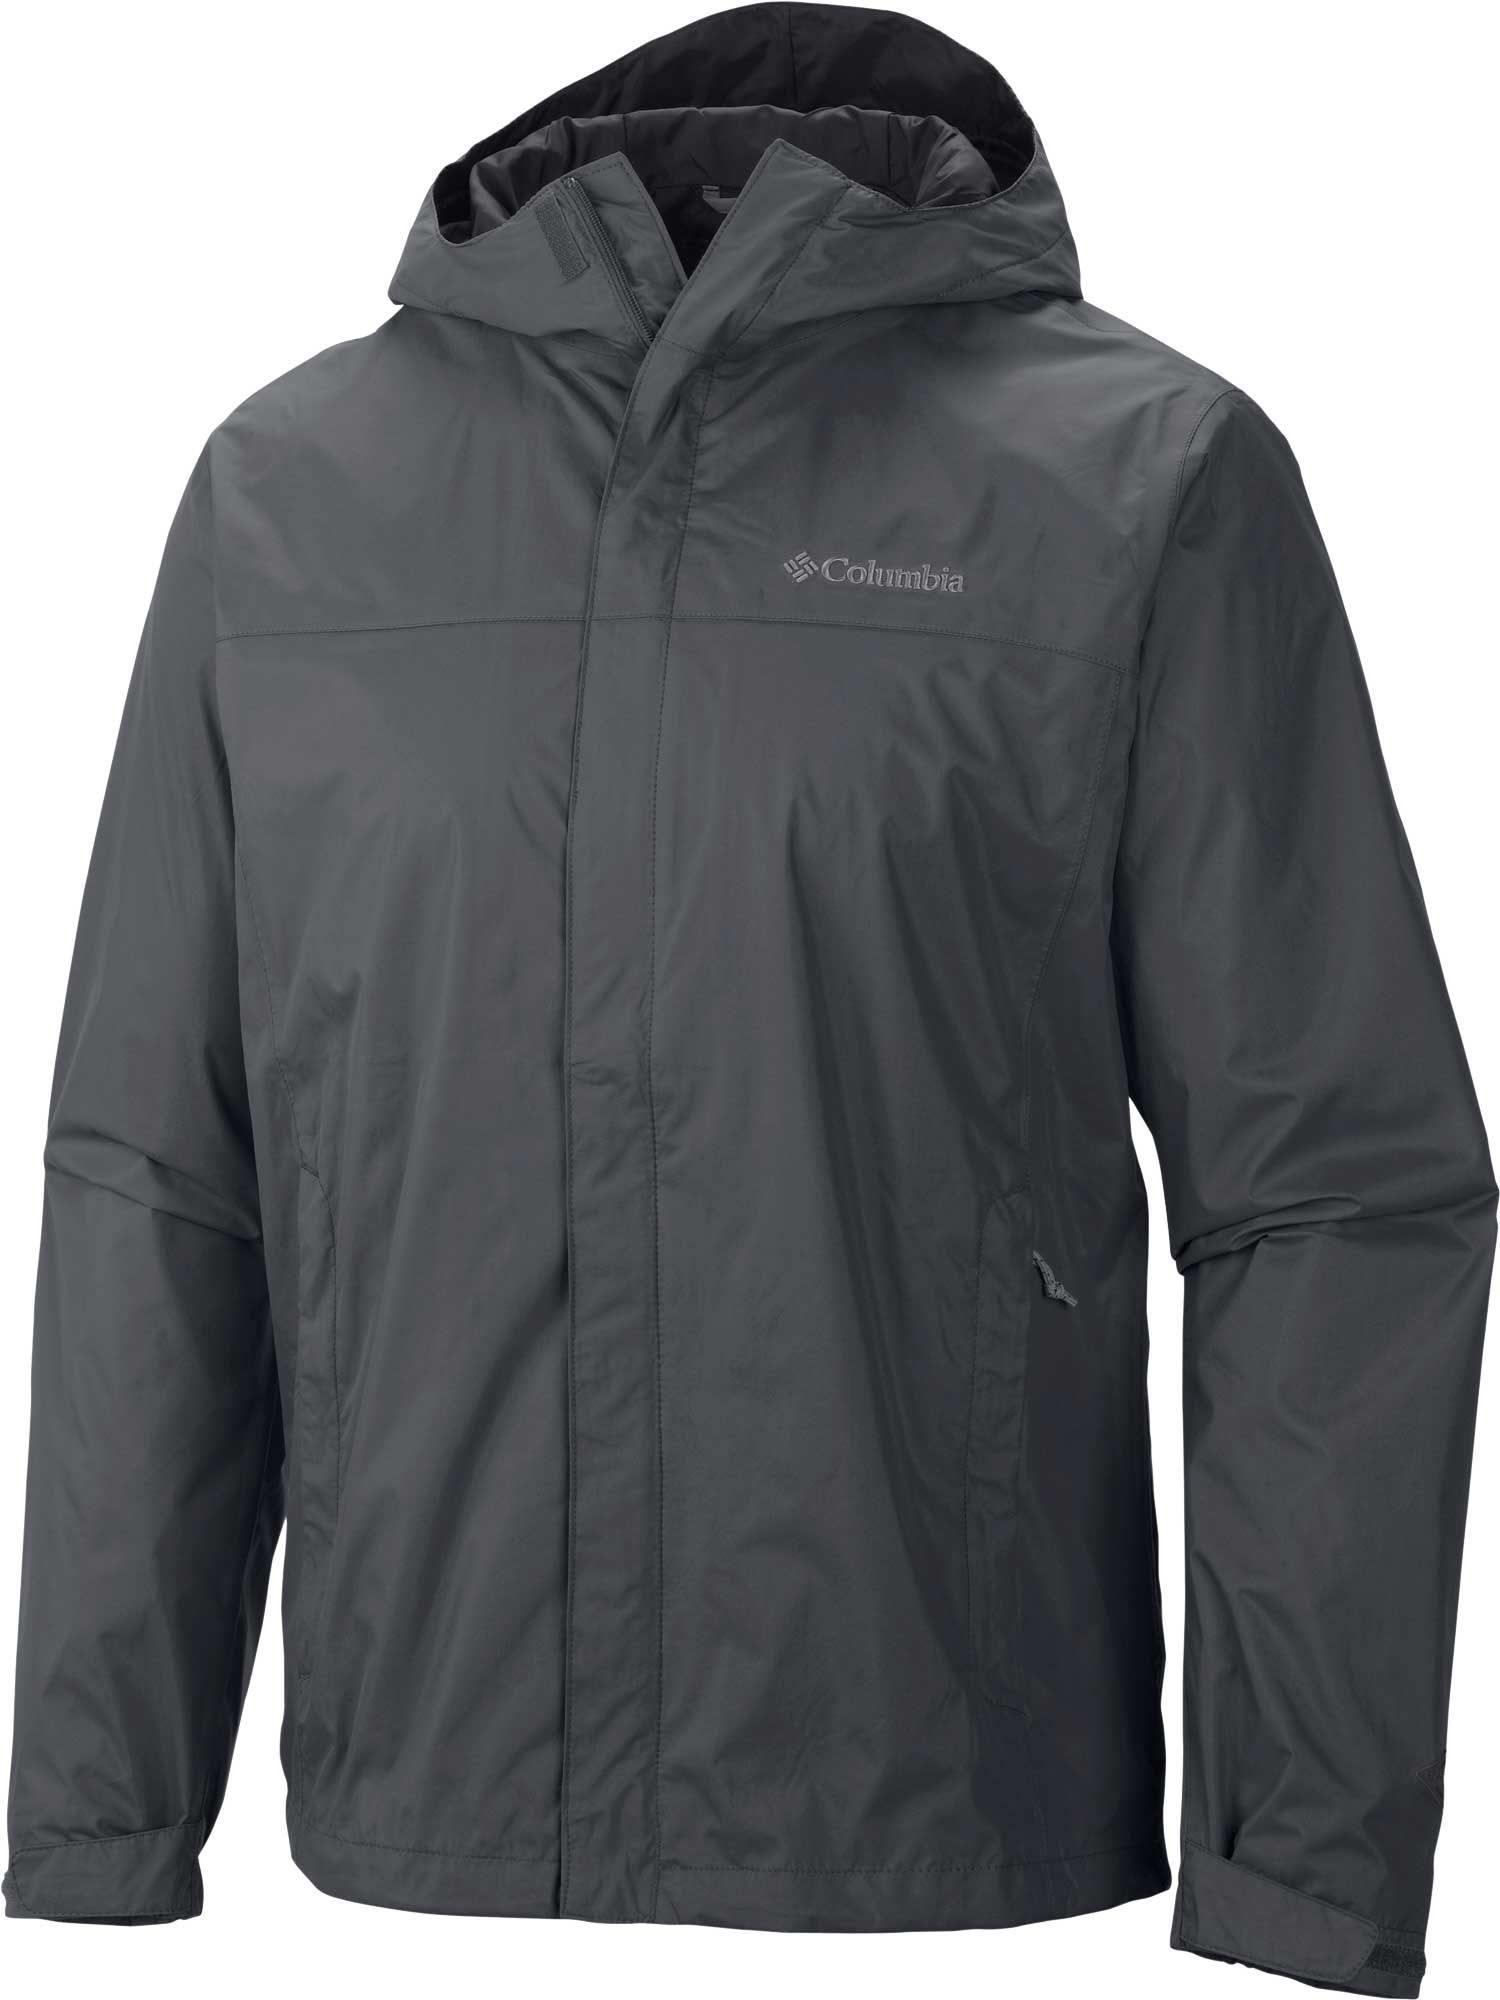 "New Mens Columbia /""Watertight II/"" Omni-Tech Packable Rain Wind Jacket"